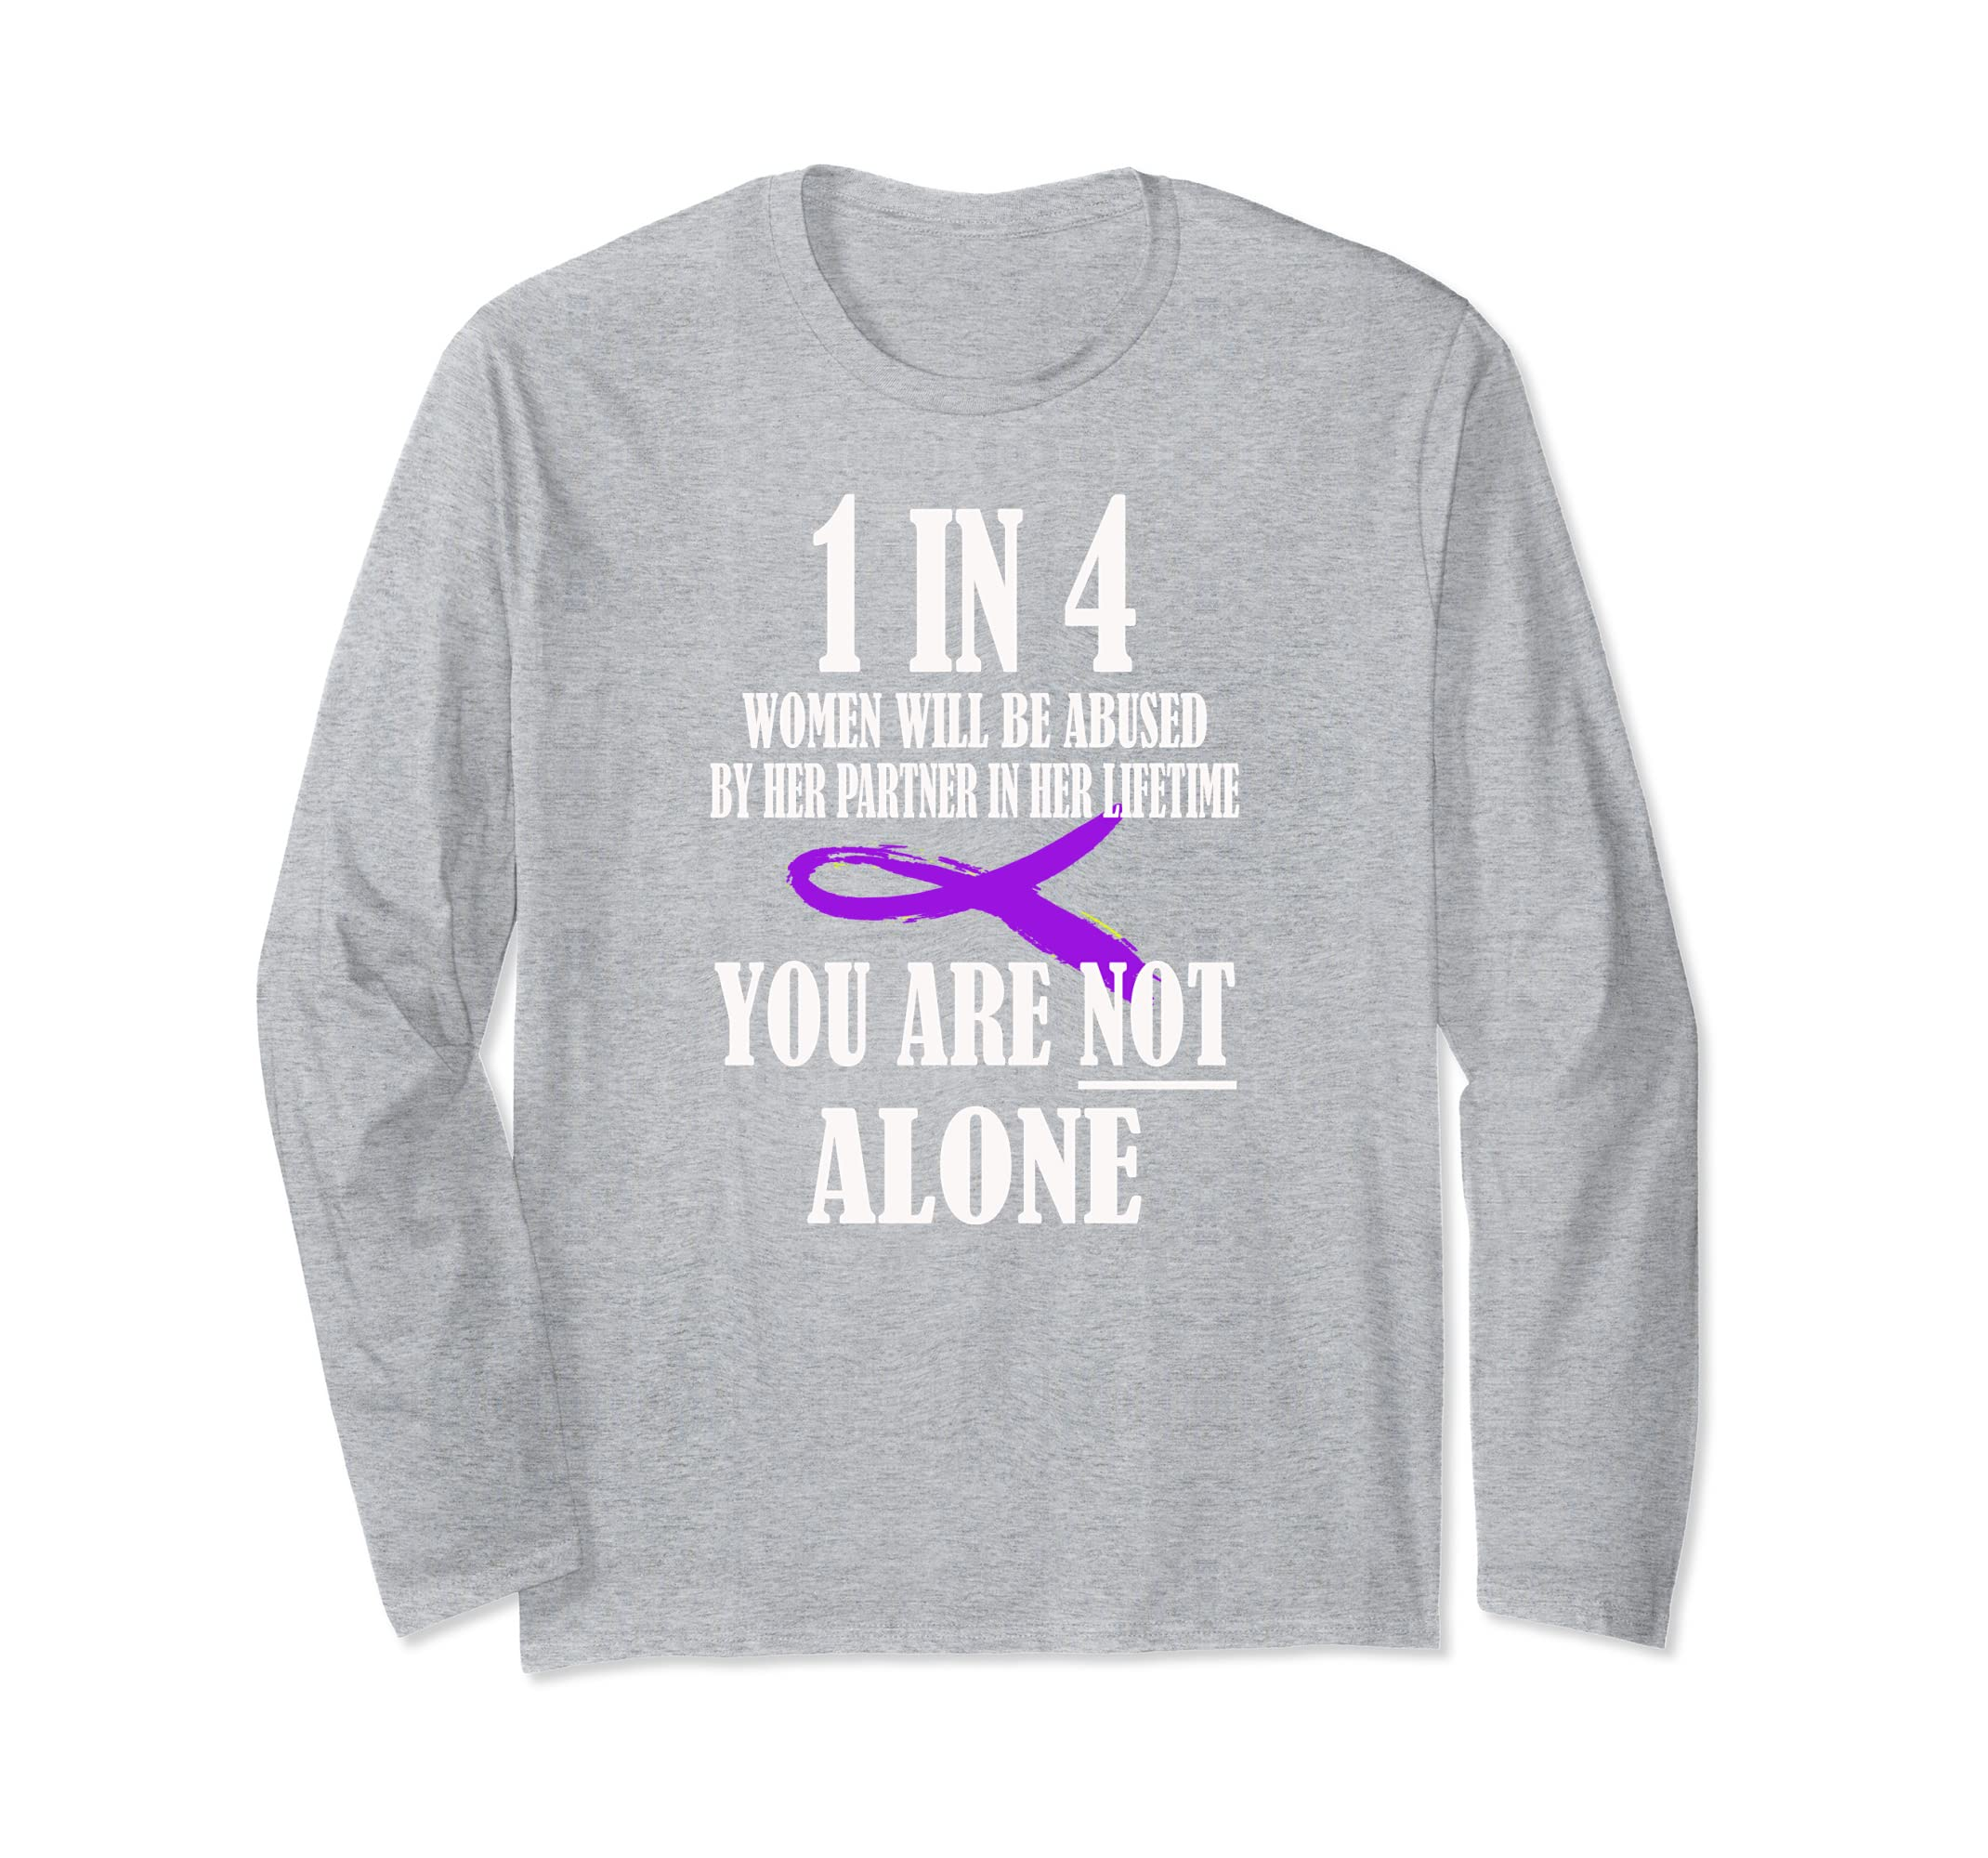 1 in 4 Domestic Violence Shirt, You Are Not Alone T Shirt-ln